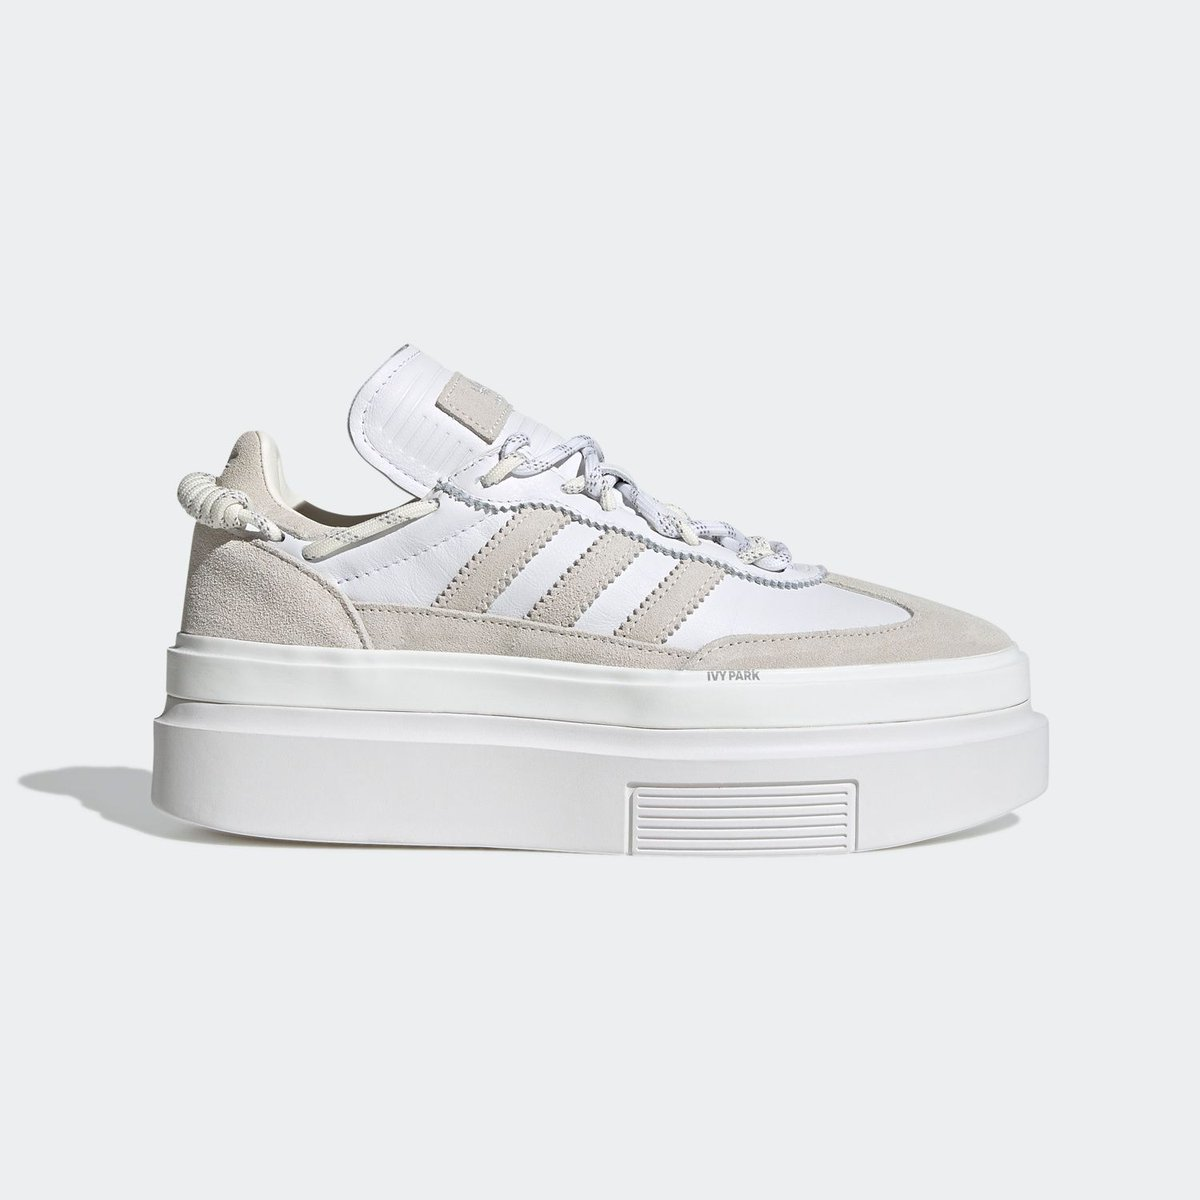 @footlocker Last sizes on @footlocker. Ivy Park x adidas Supersleek 72.   3